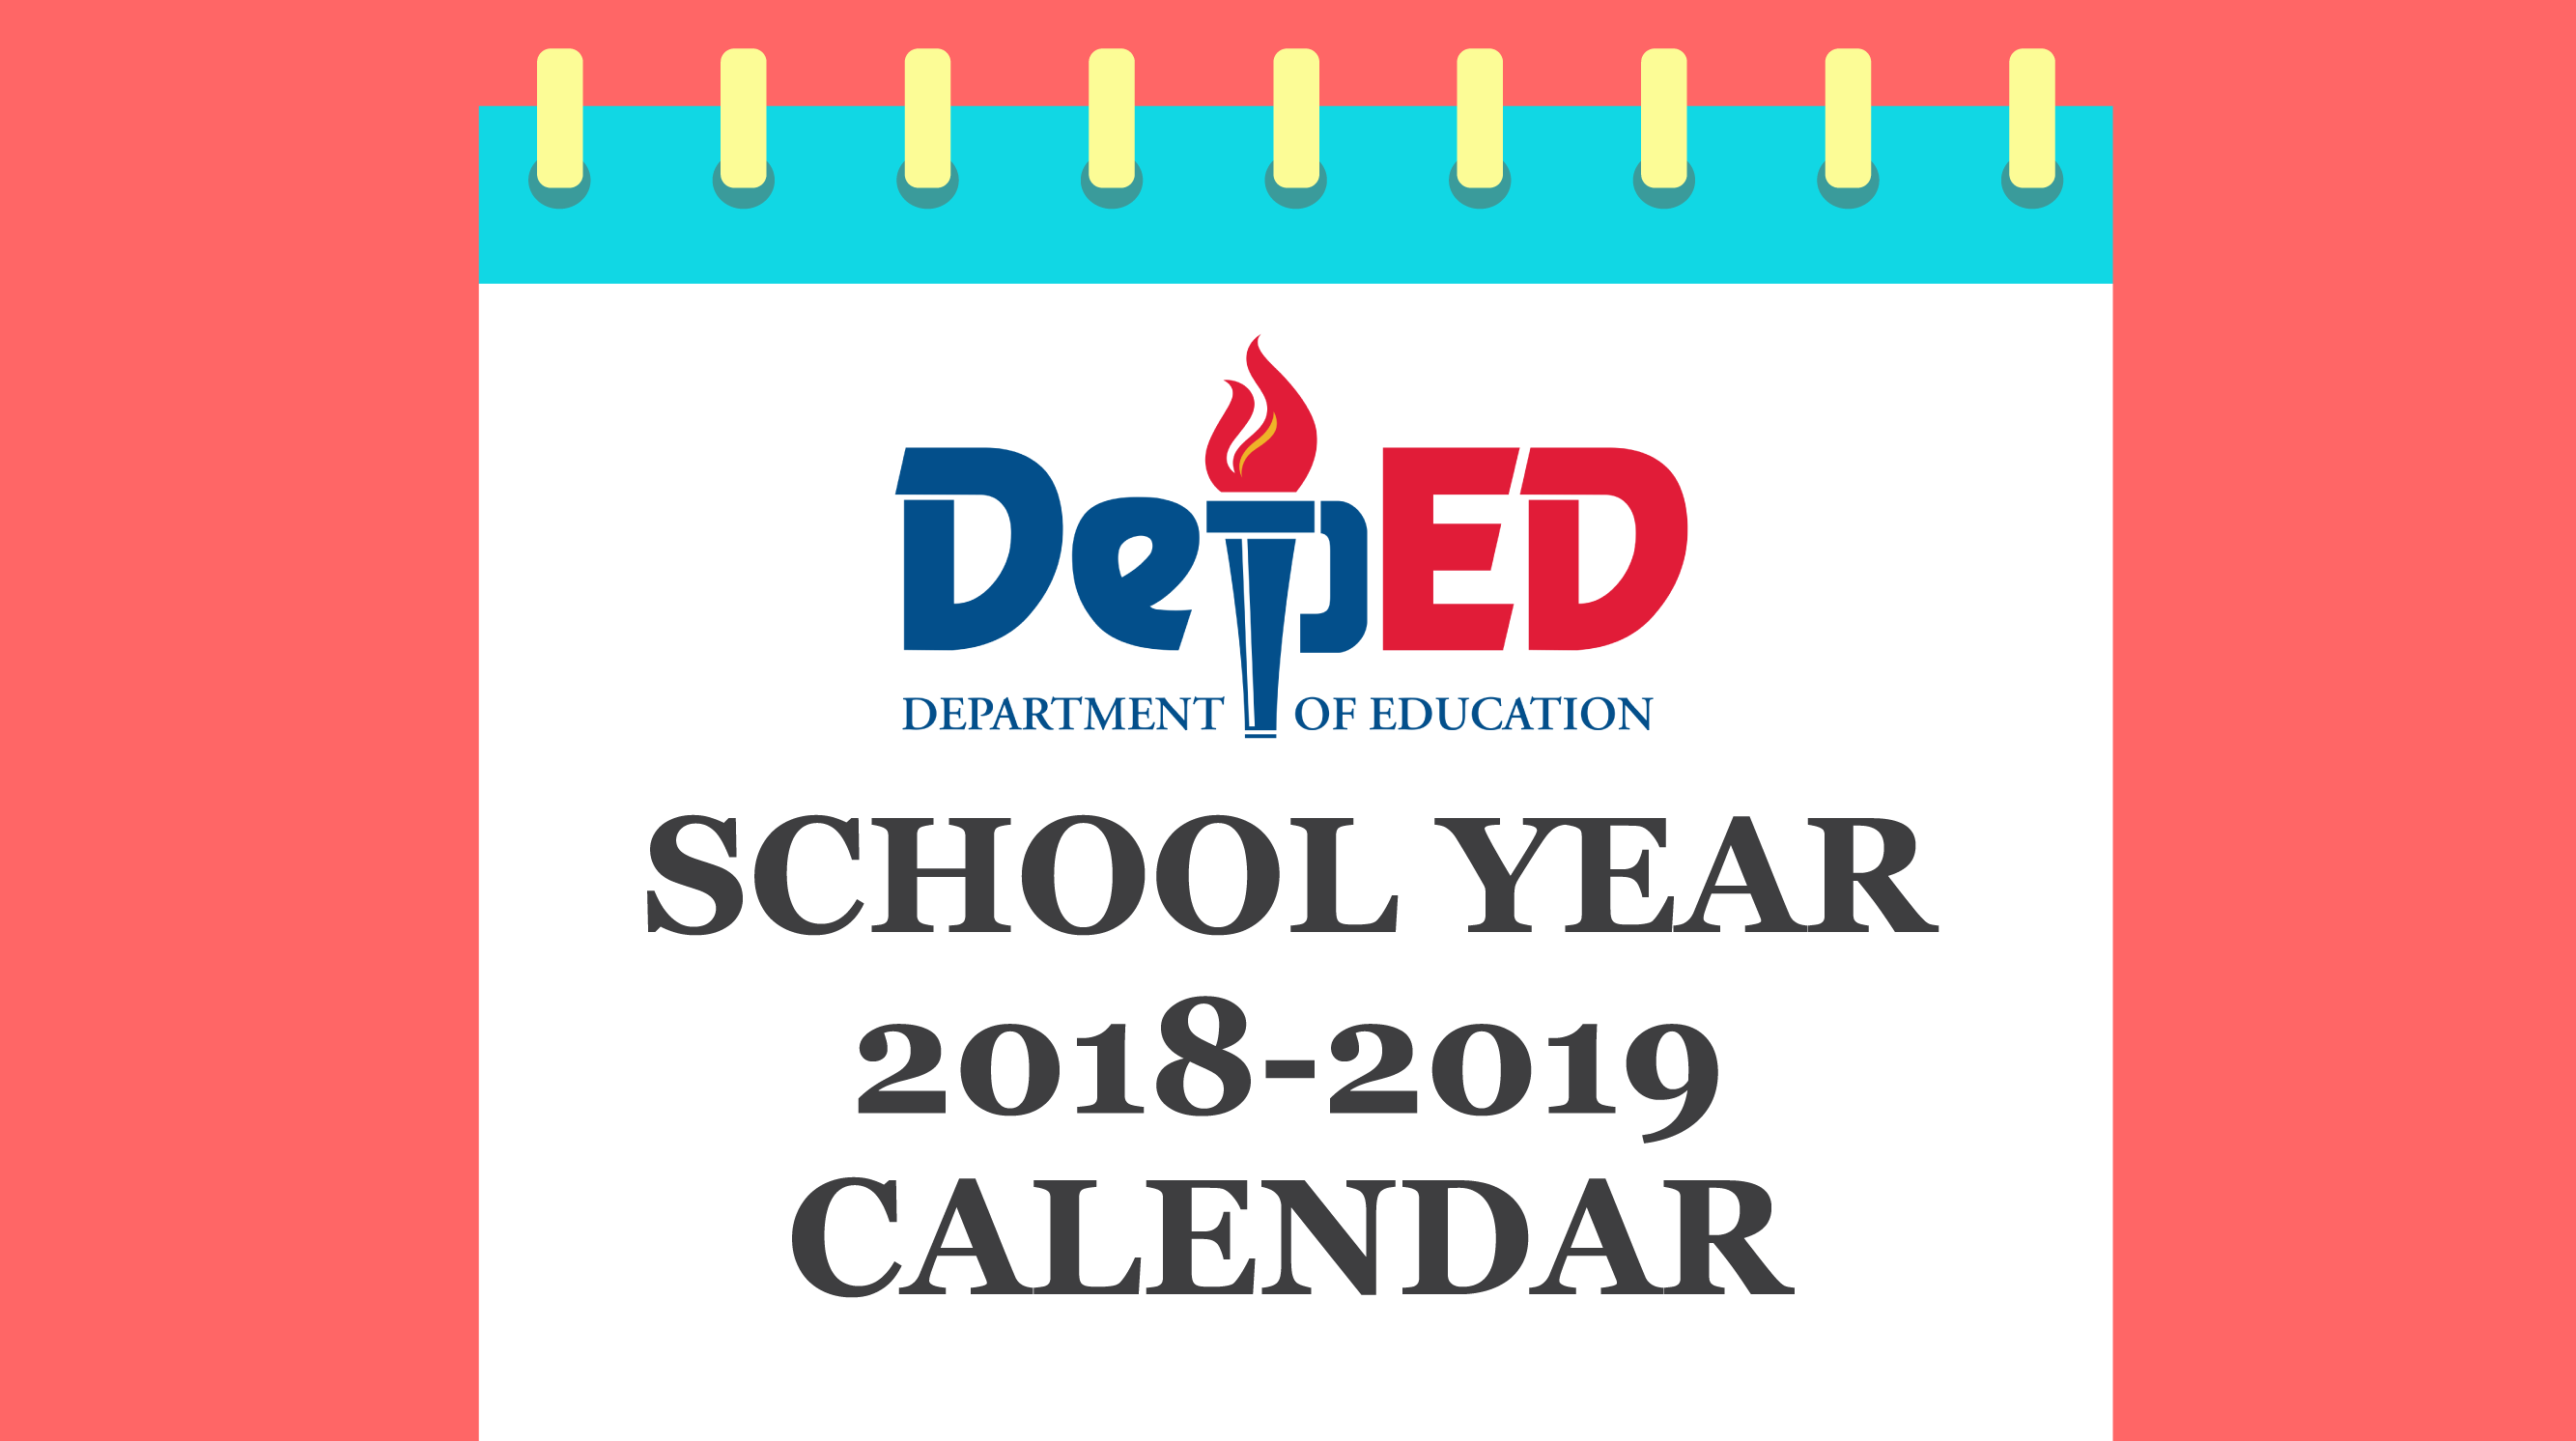 DepEd Releases Calendar for School Year 2018 to 2019 (Plus Holidays)